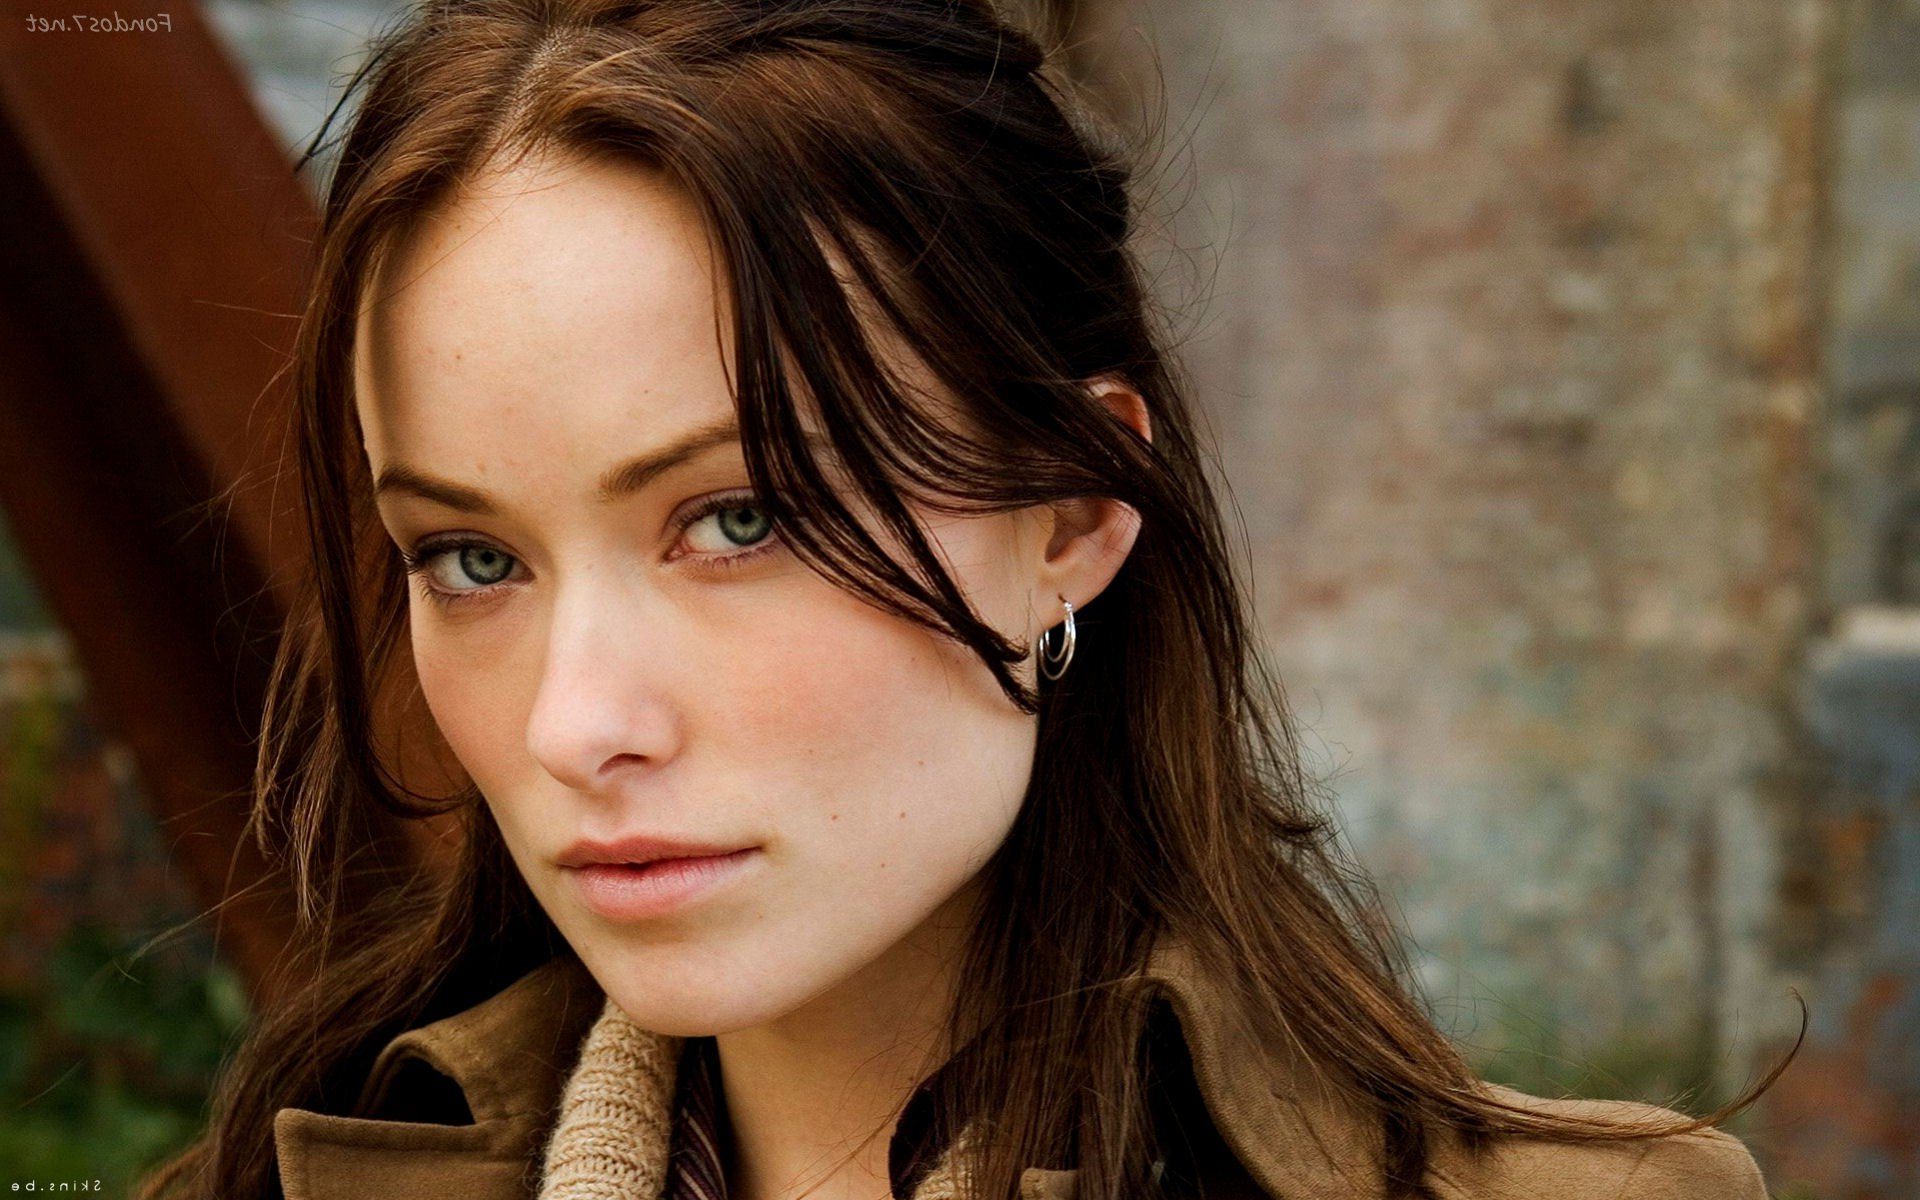 Best Hairstyles For Big Foreheads Within Popular Medium Hairstyles For Big Foreheads (View 5 of 20)